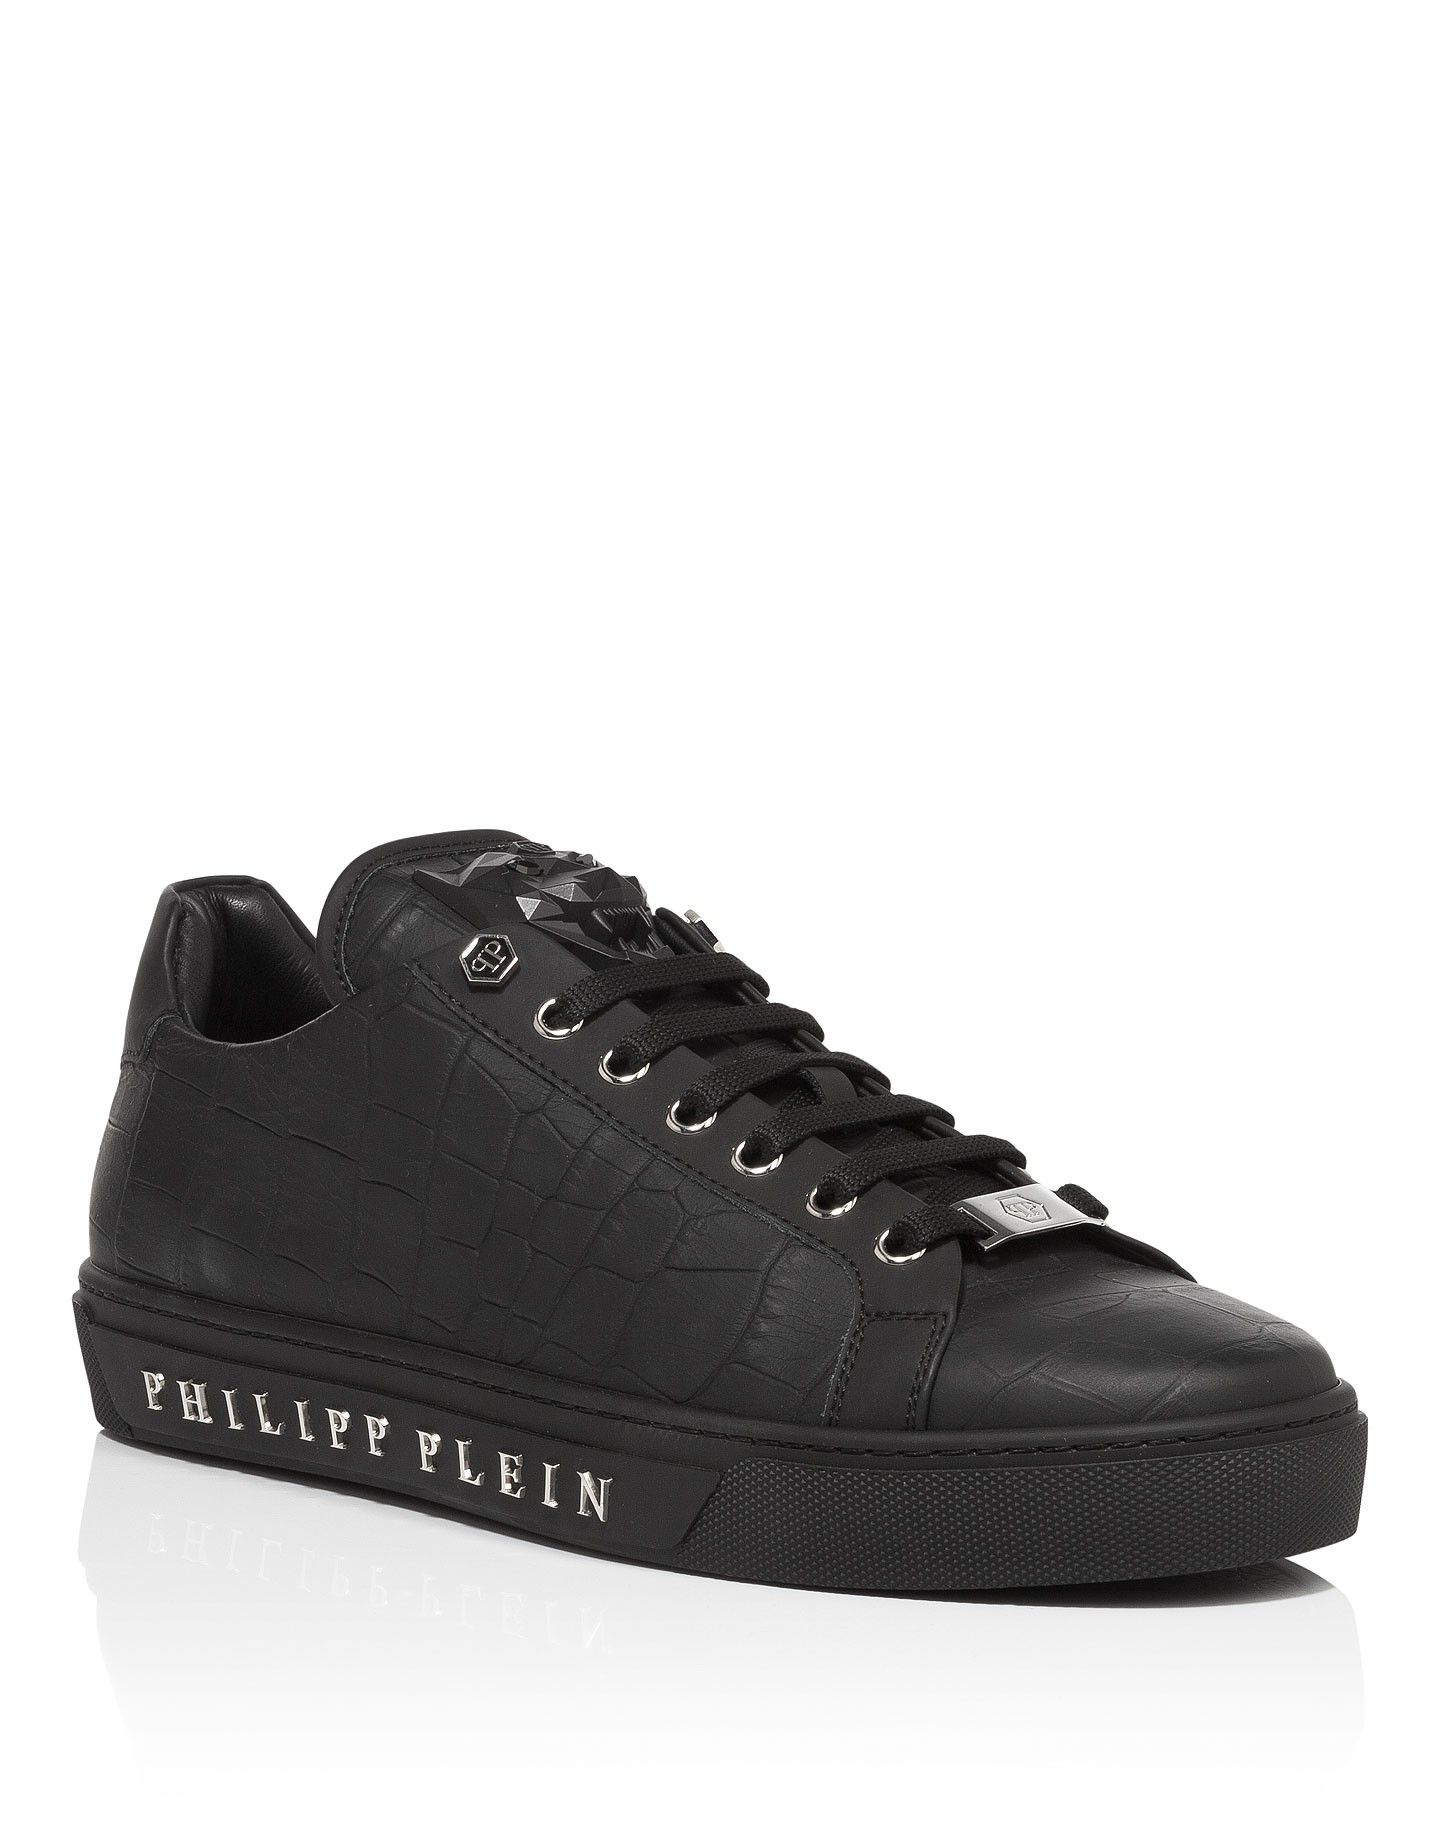 PHILIPP PLEIN LOW SNEAKERS